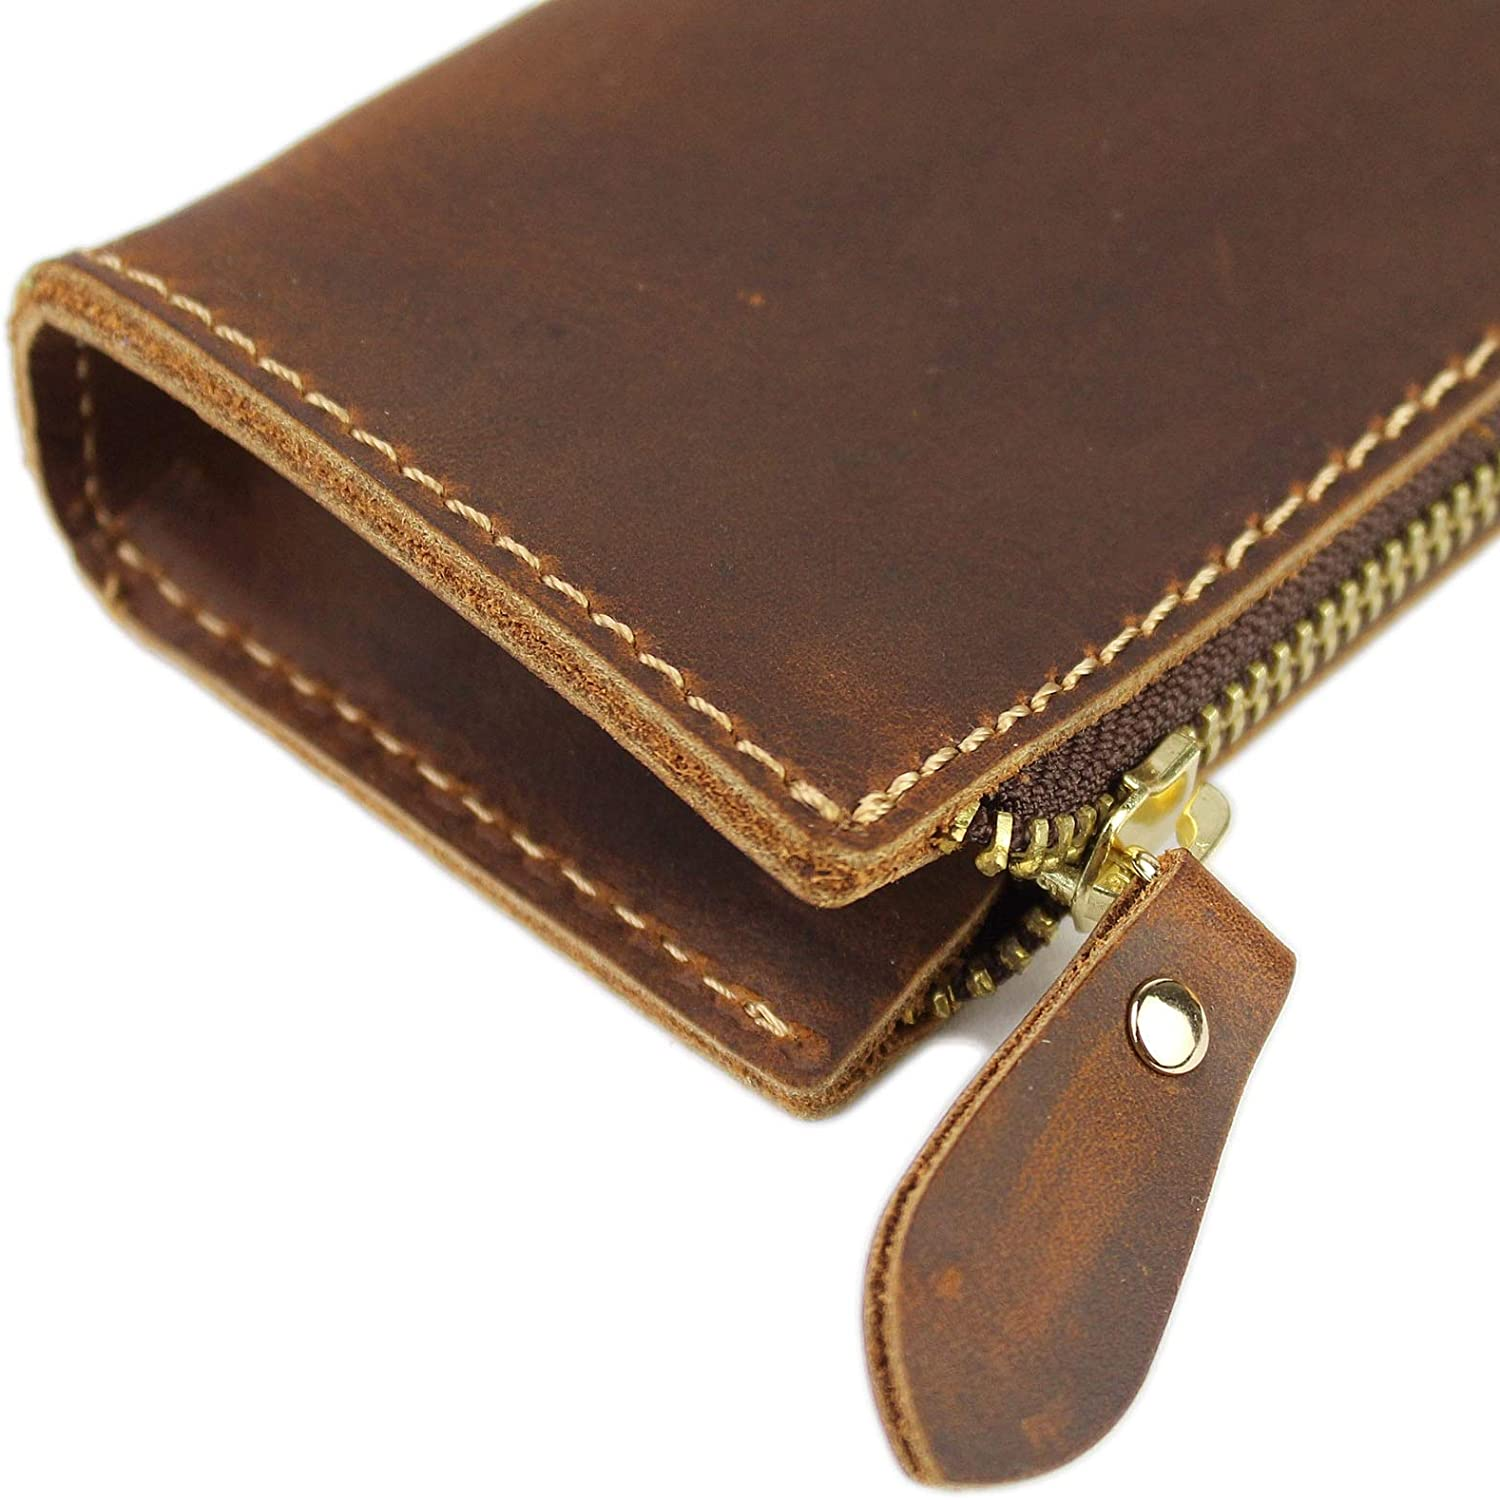 Work /& Office A Style Coffee Leather Pencil Case Zippered Pen Pouch for School